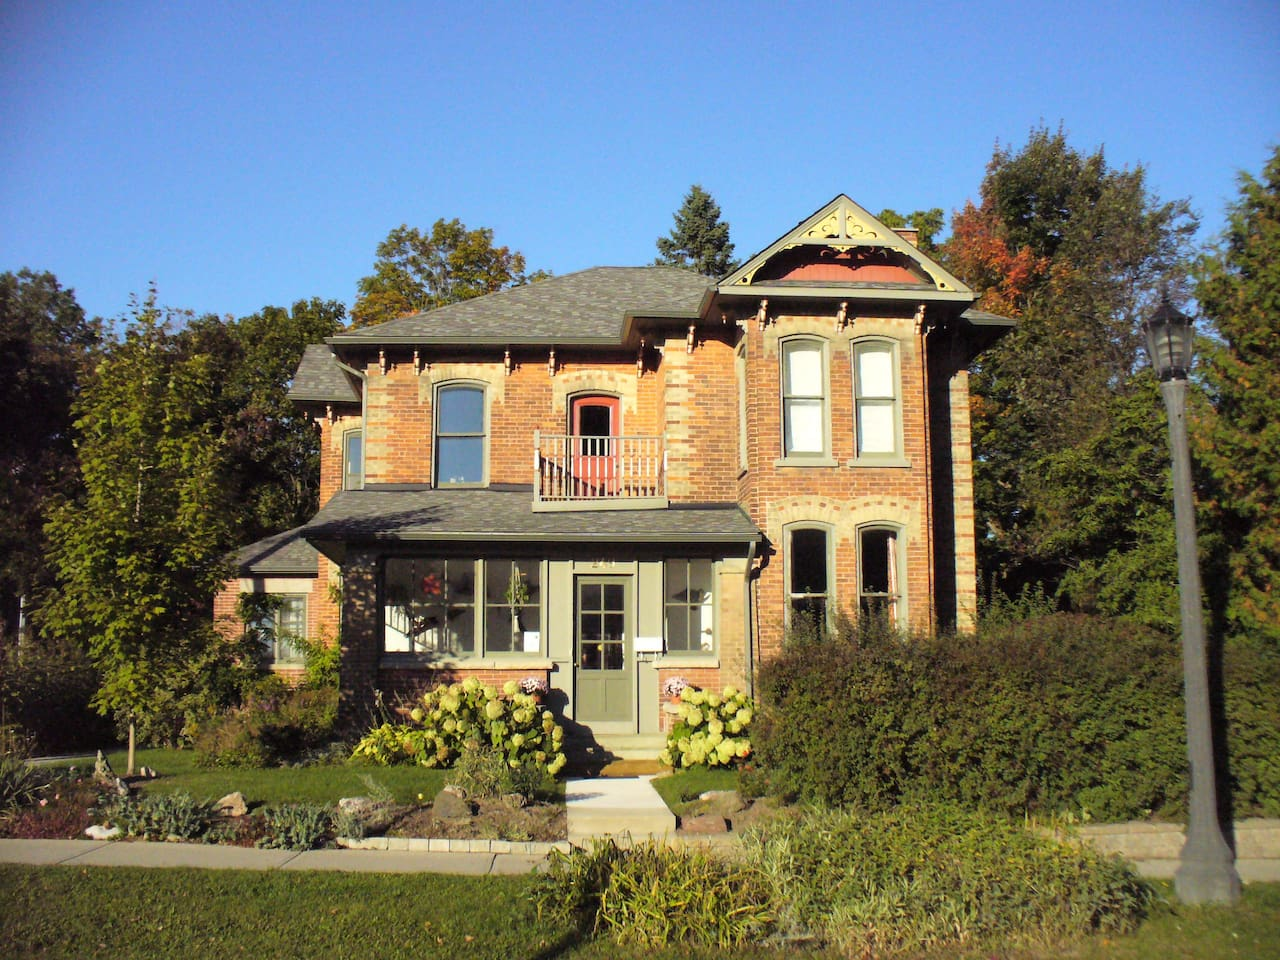 The Flying Leap Bed and Breakfast in Elora, Ontario